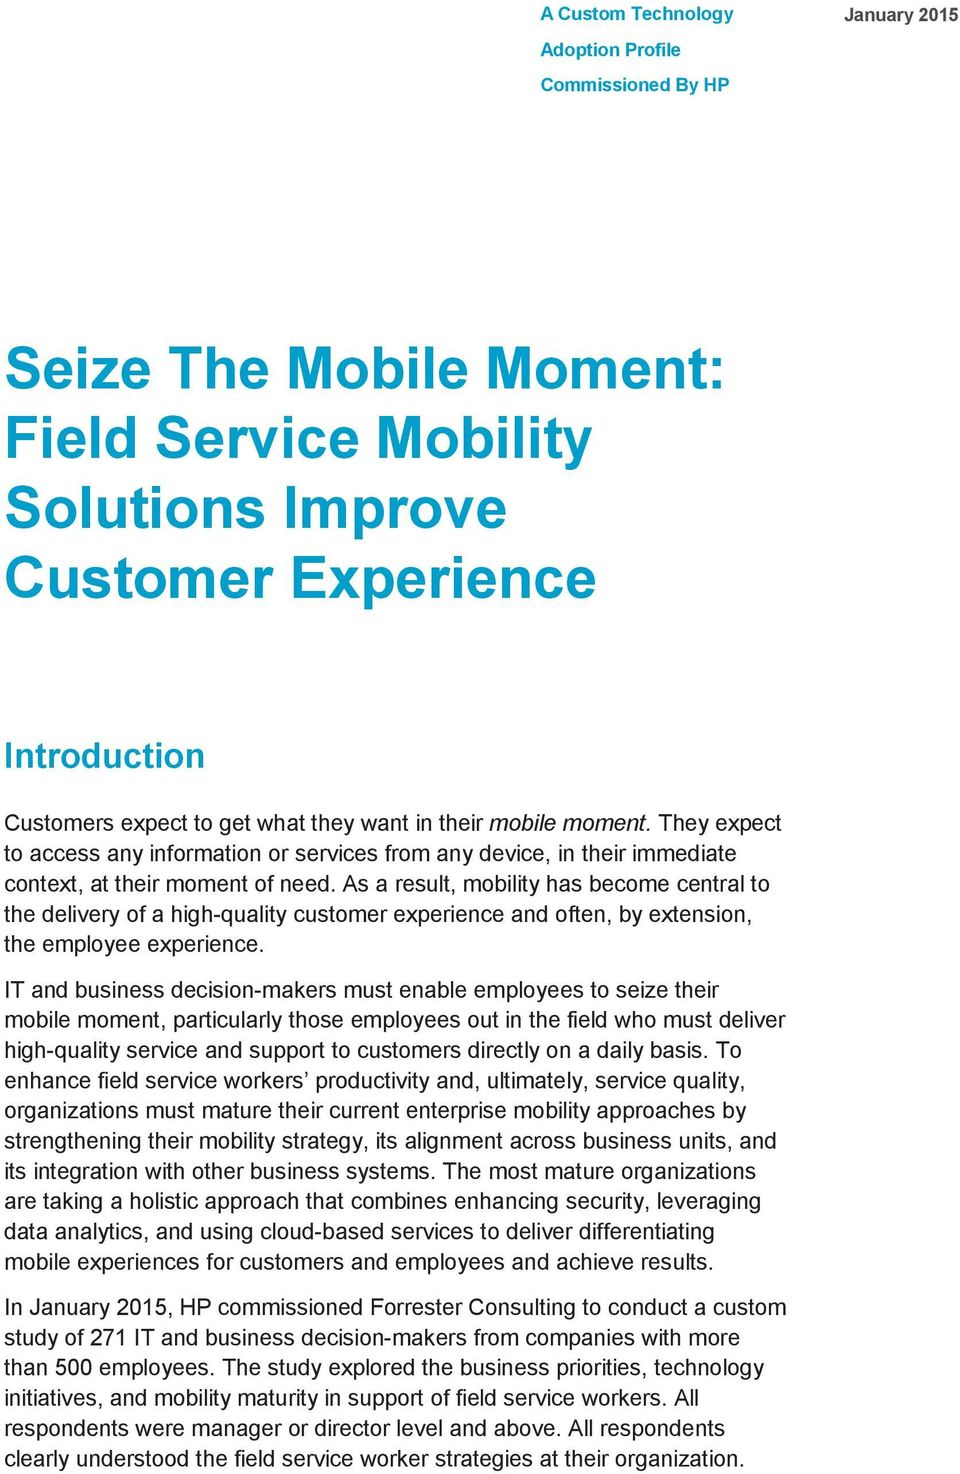 As a result, mobility has become central to the delivery of a high-quality customer experience and often, by extension, the employee experience.